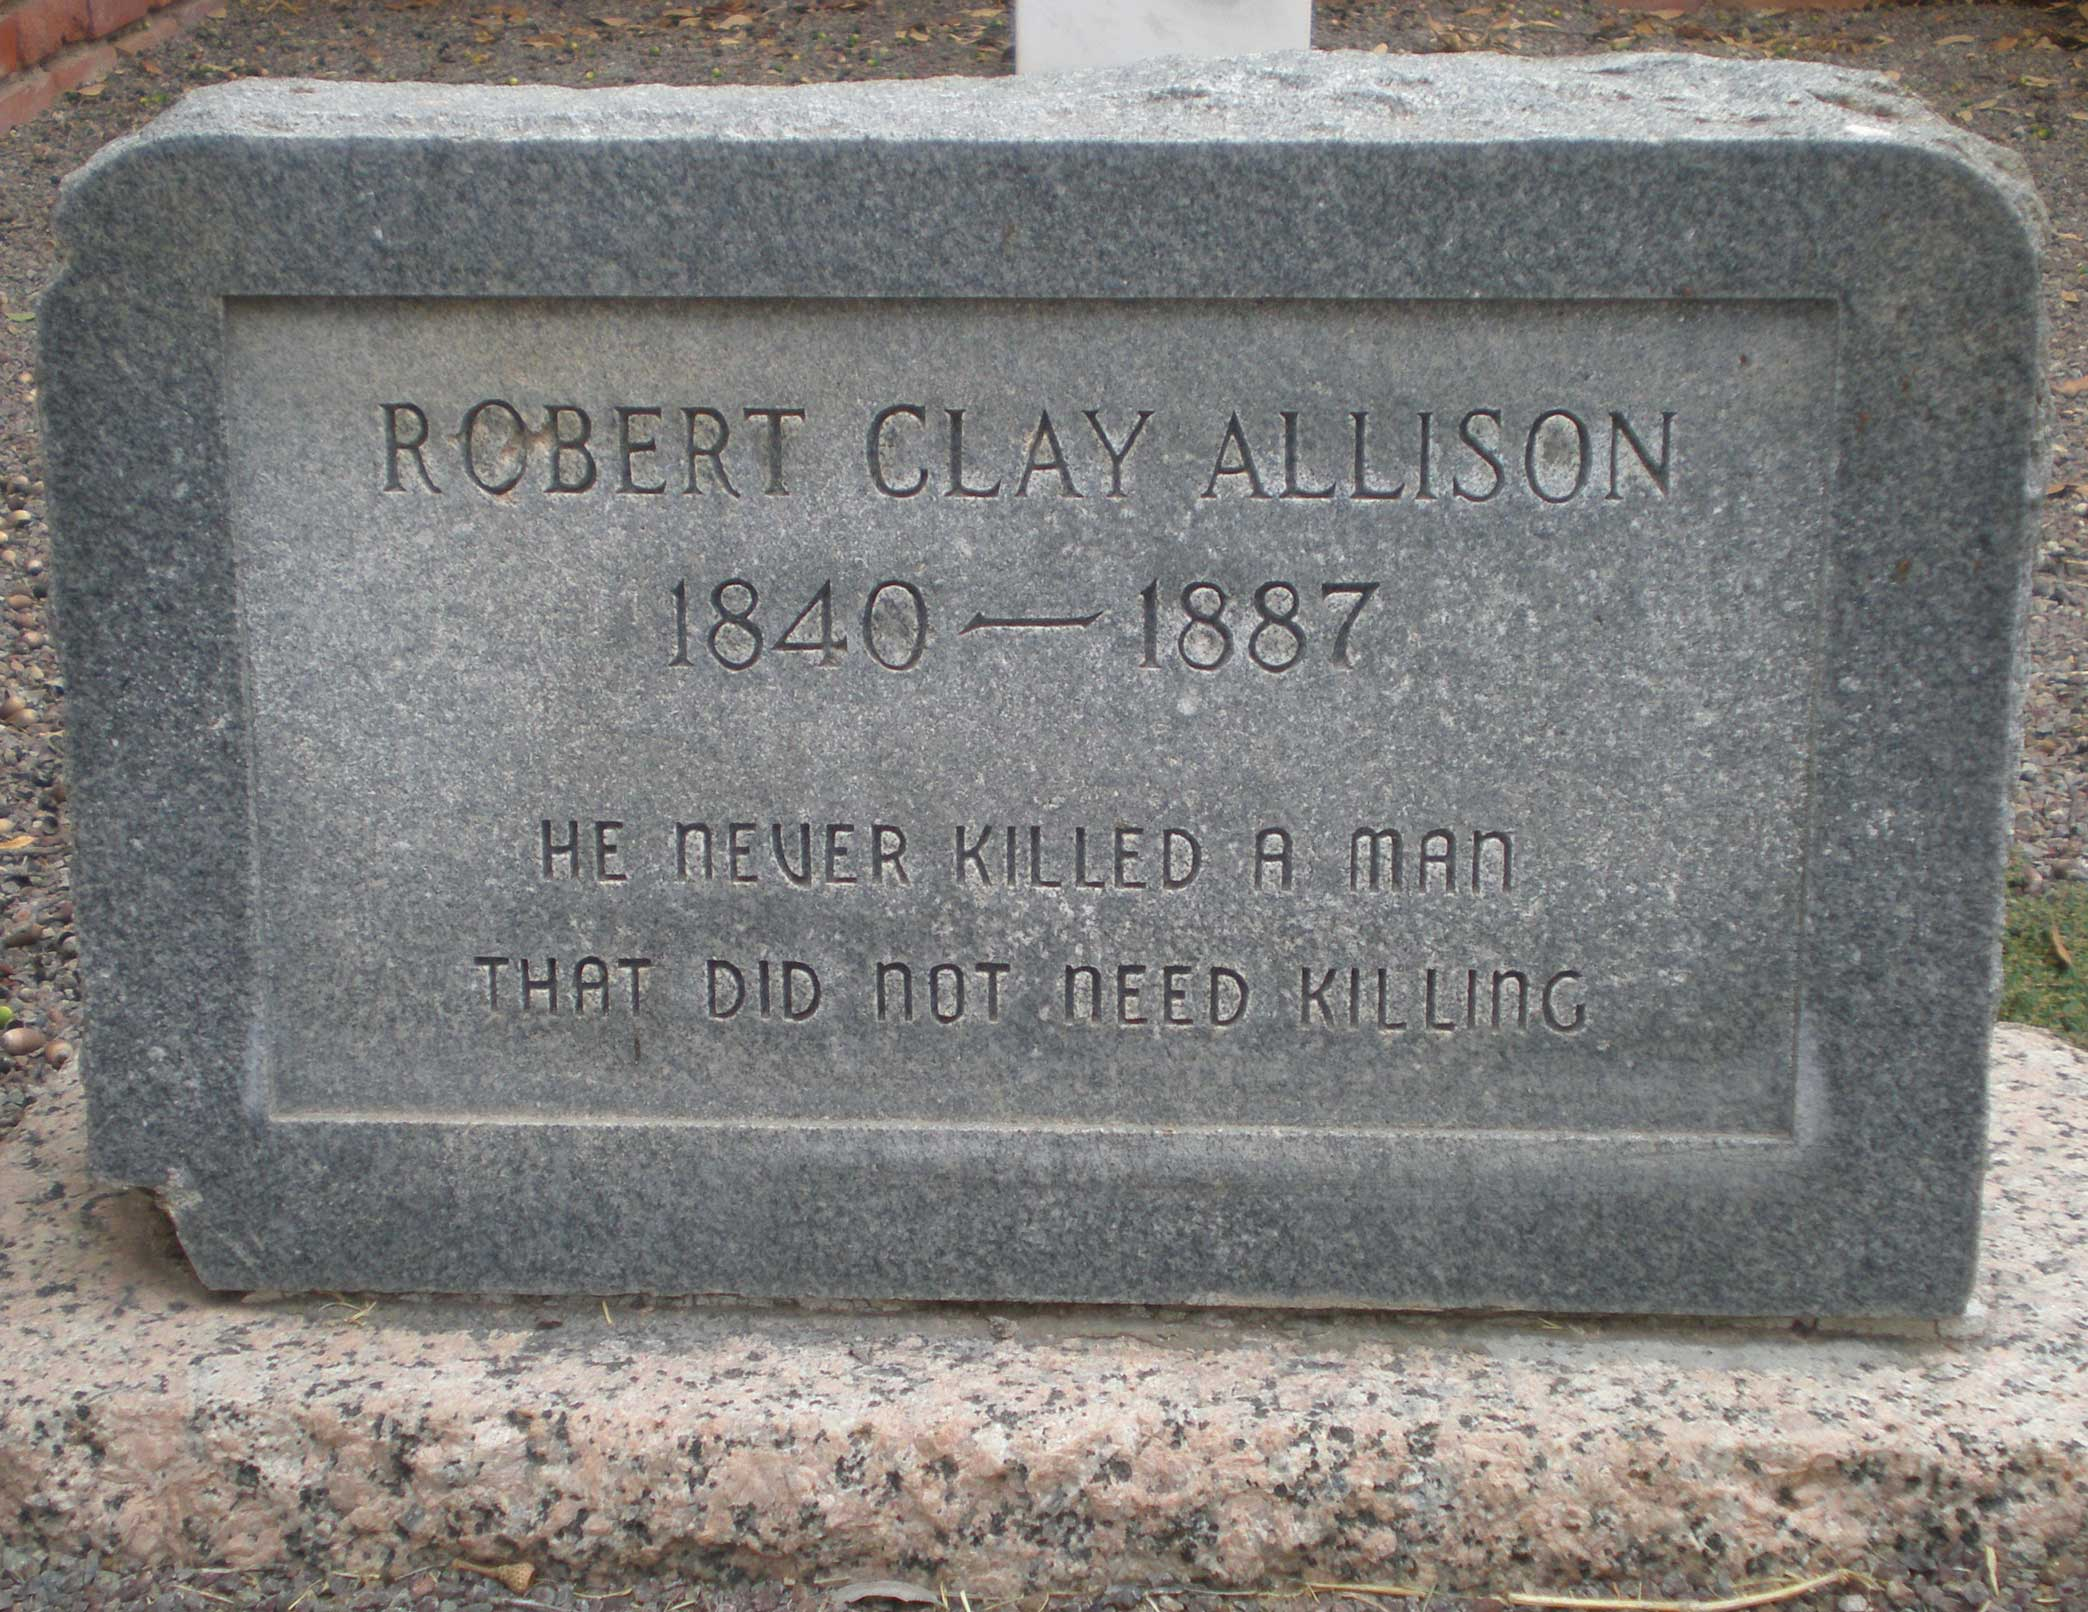 manliest photos on the internet, funny manly images, robert clay alliso killed a man tombstone